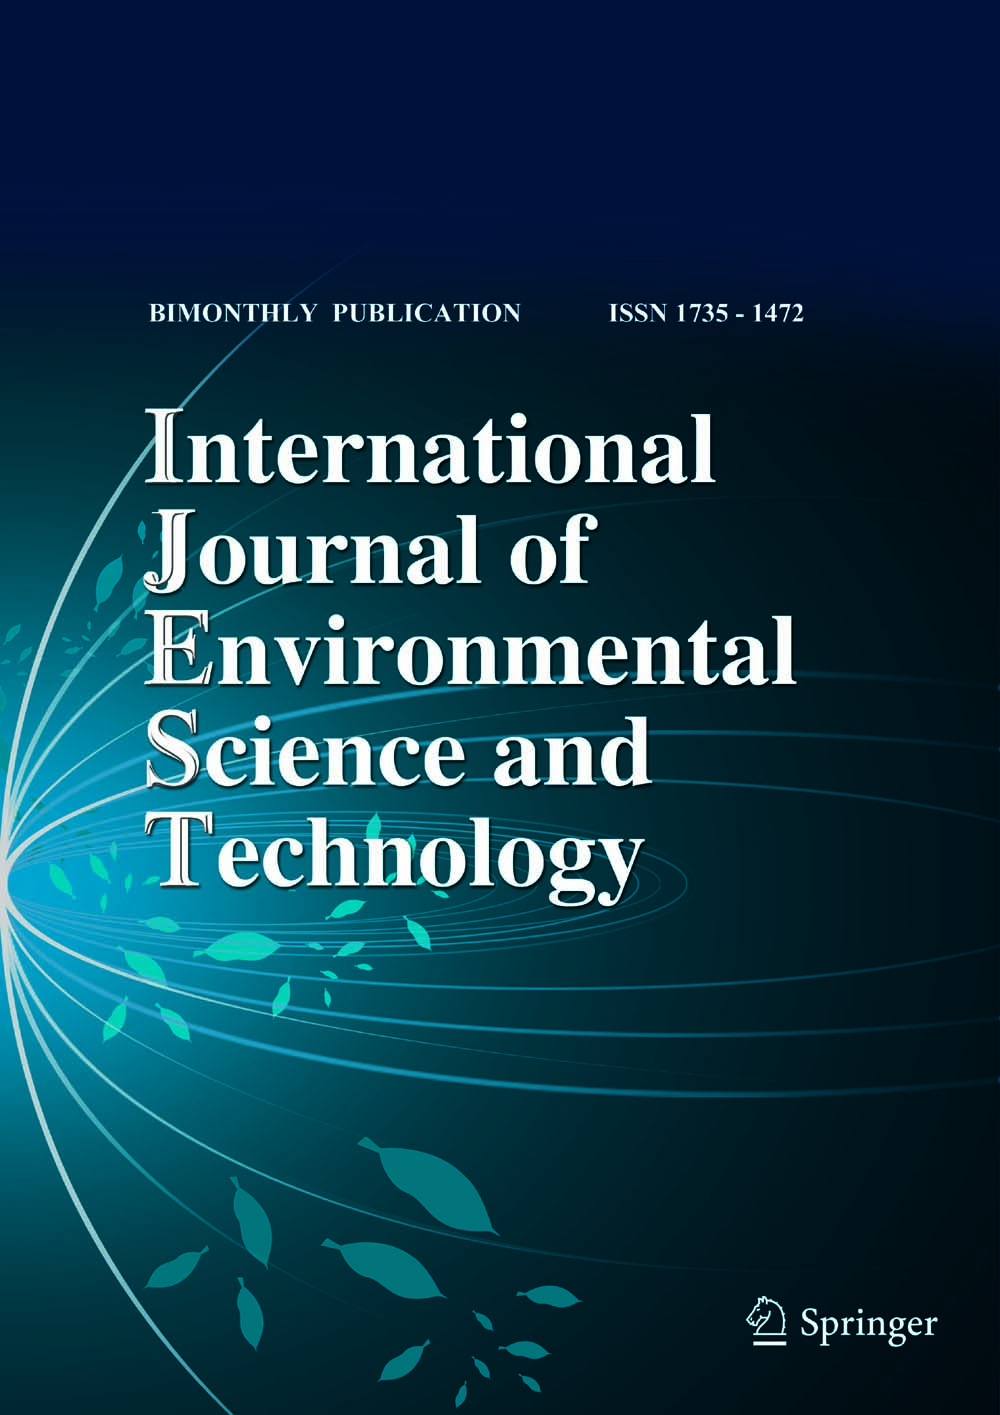 (International Journal of Environment & Technology (IJEST